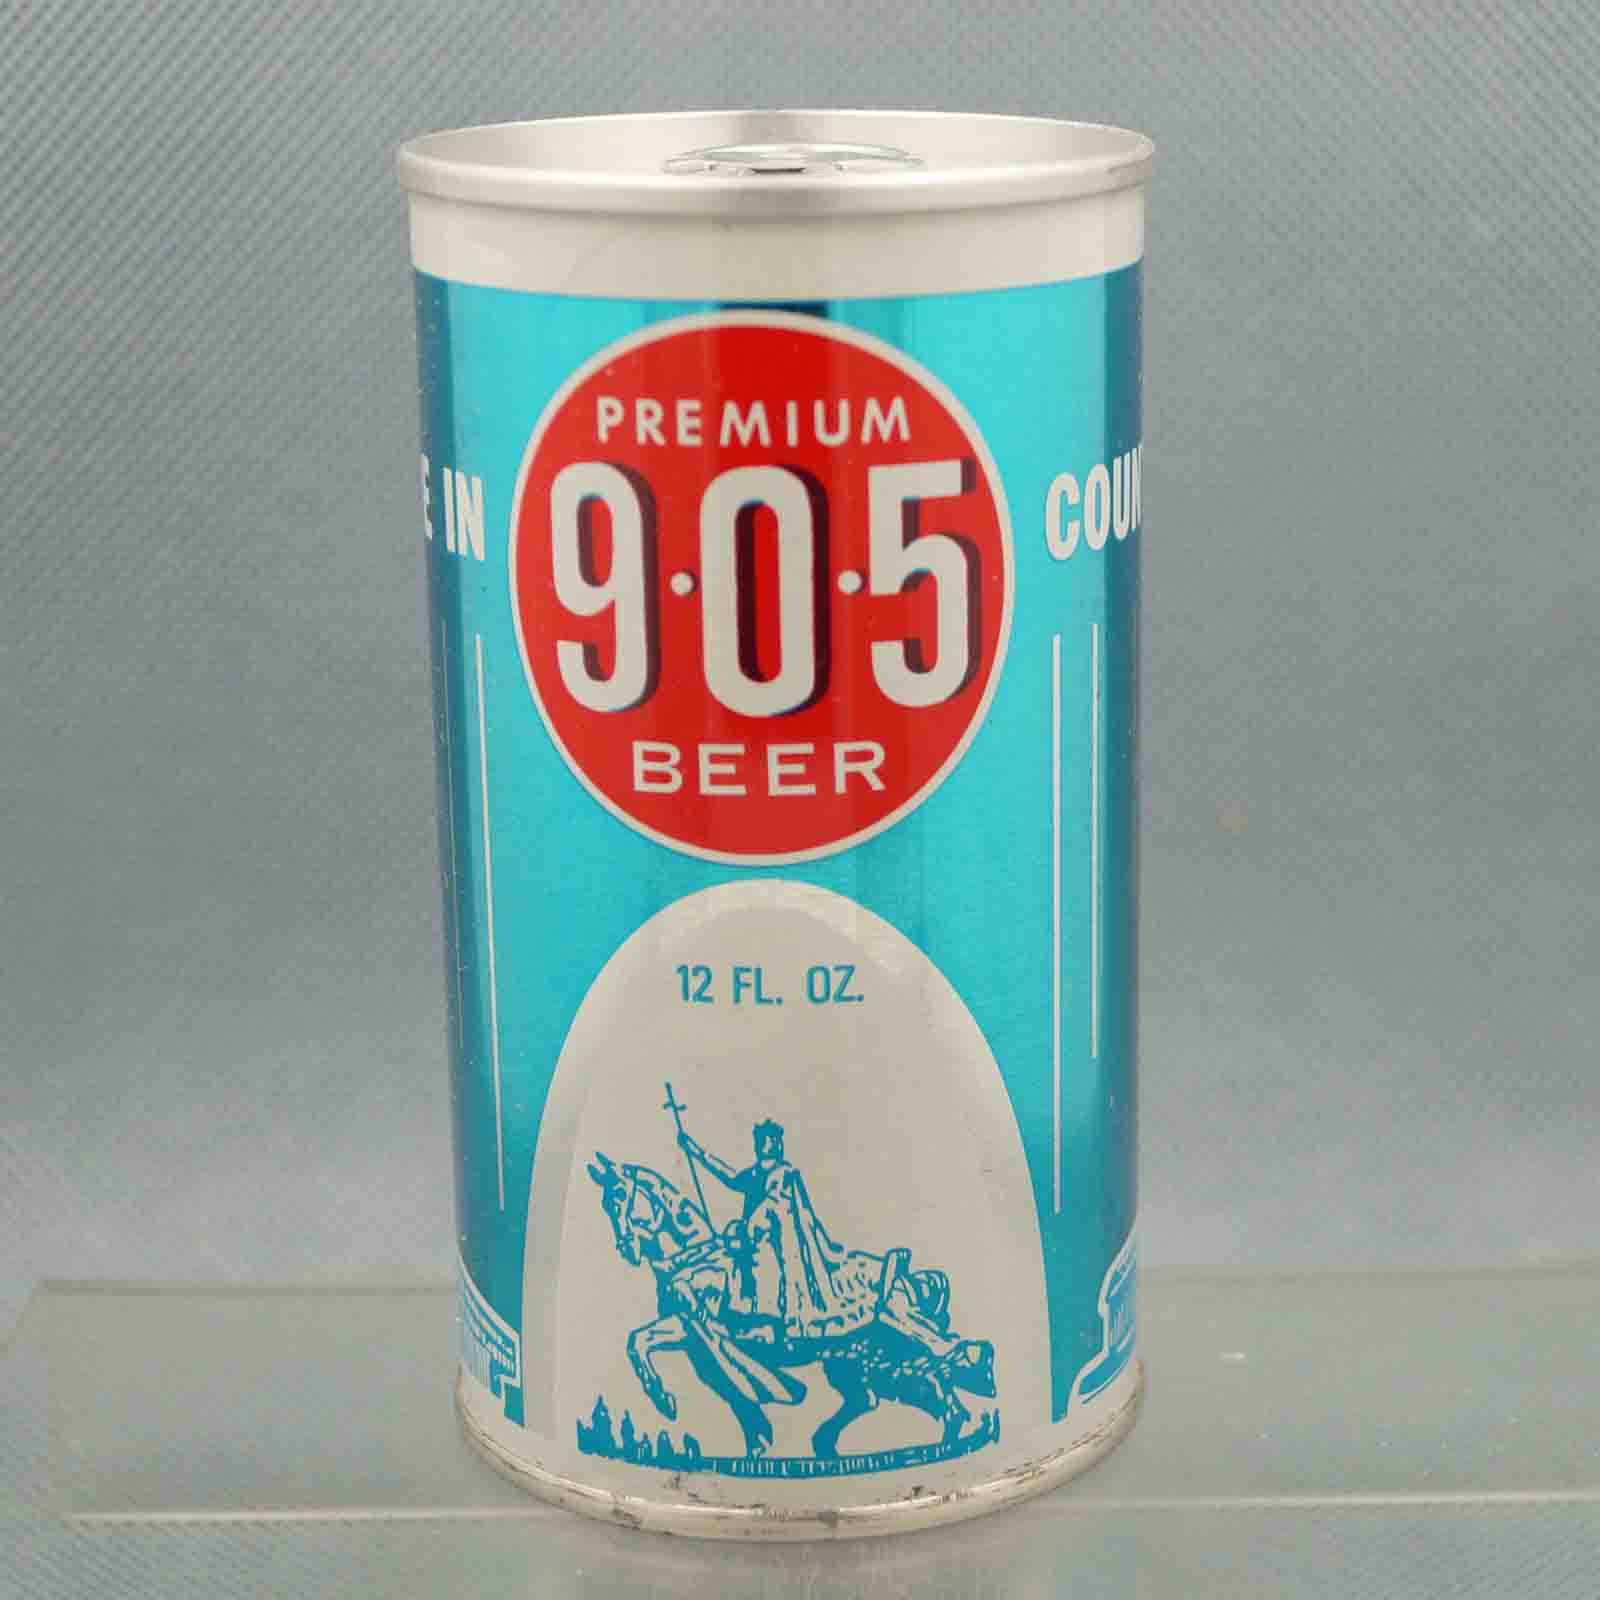 905 98-17 pull tab beer can 1